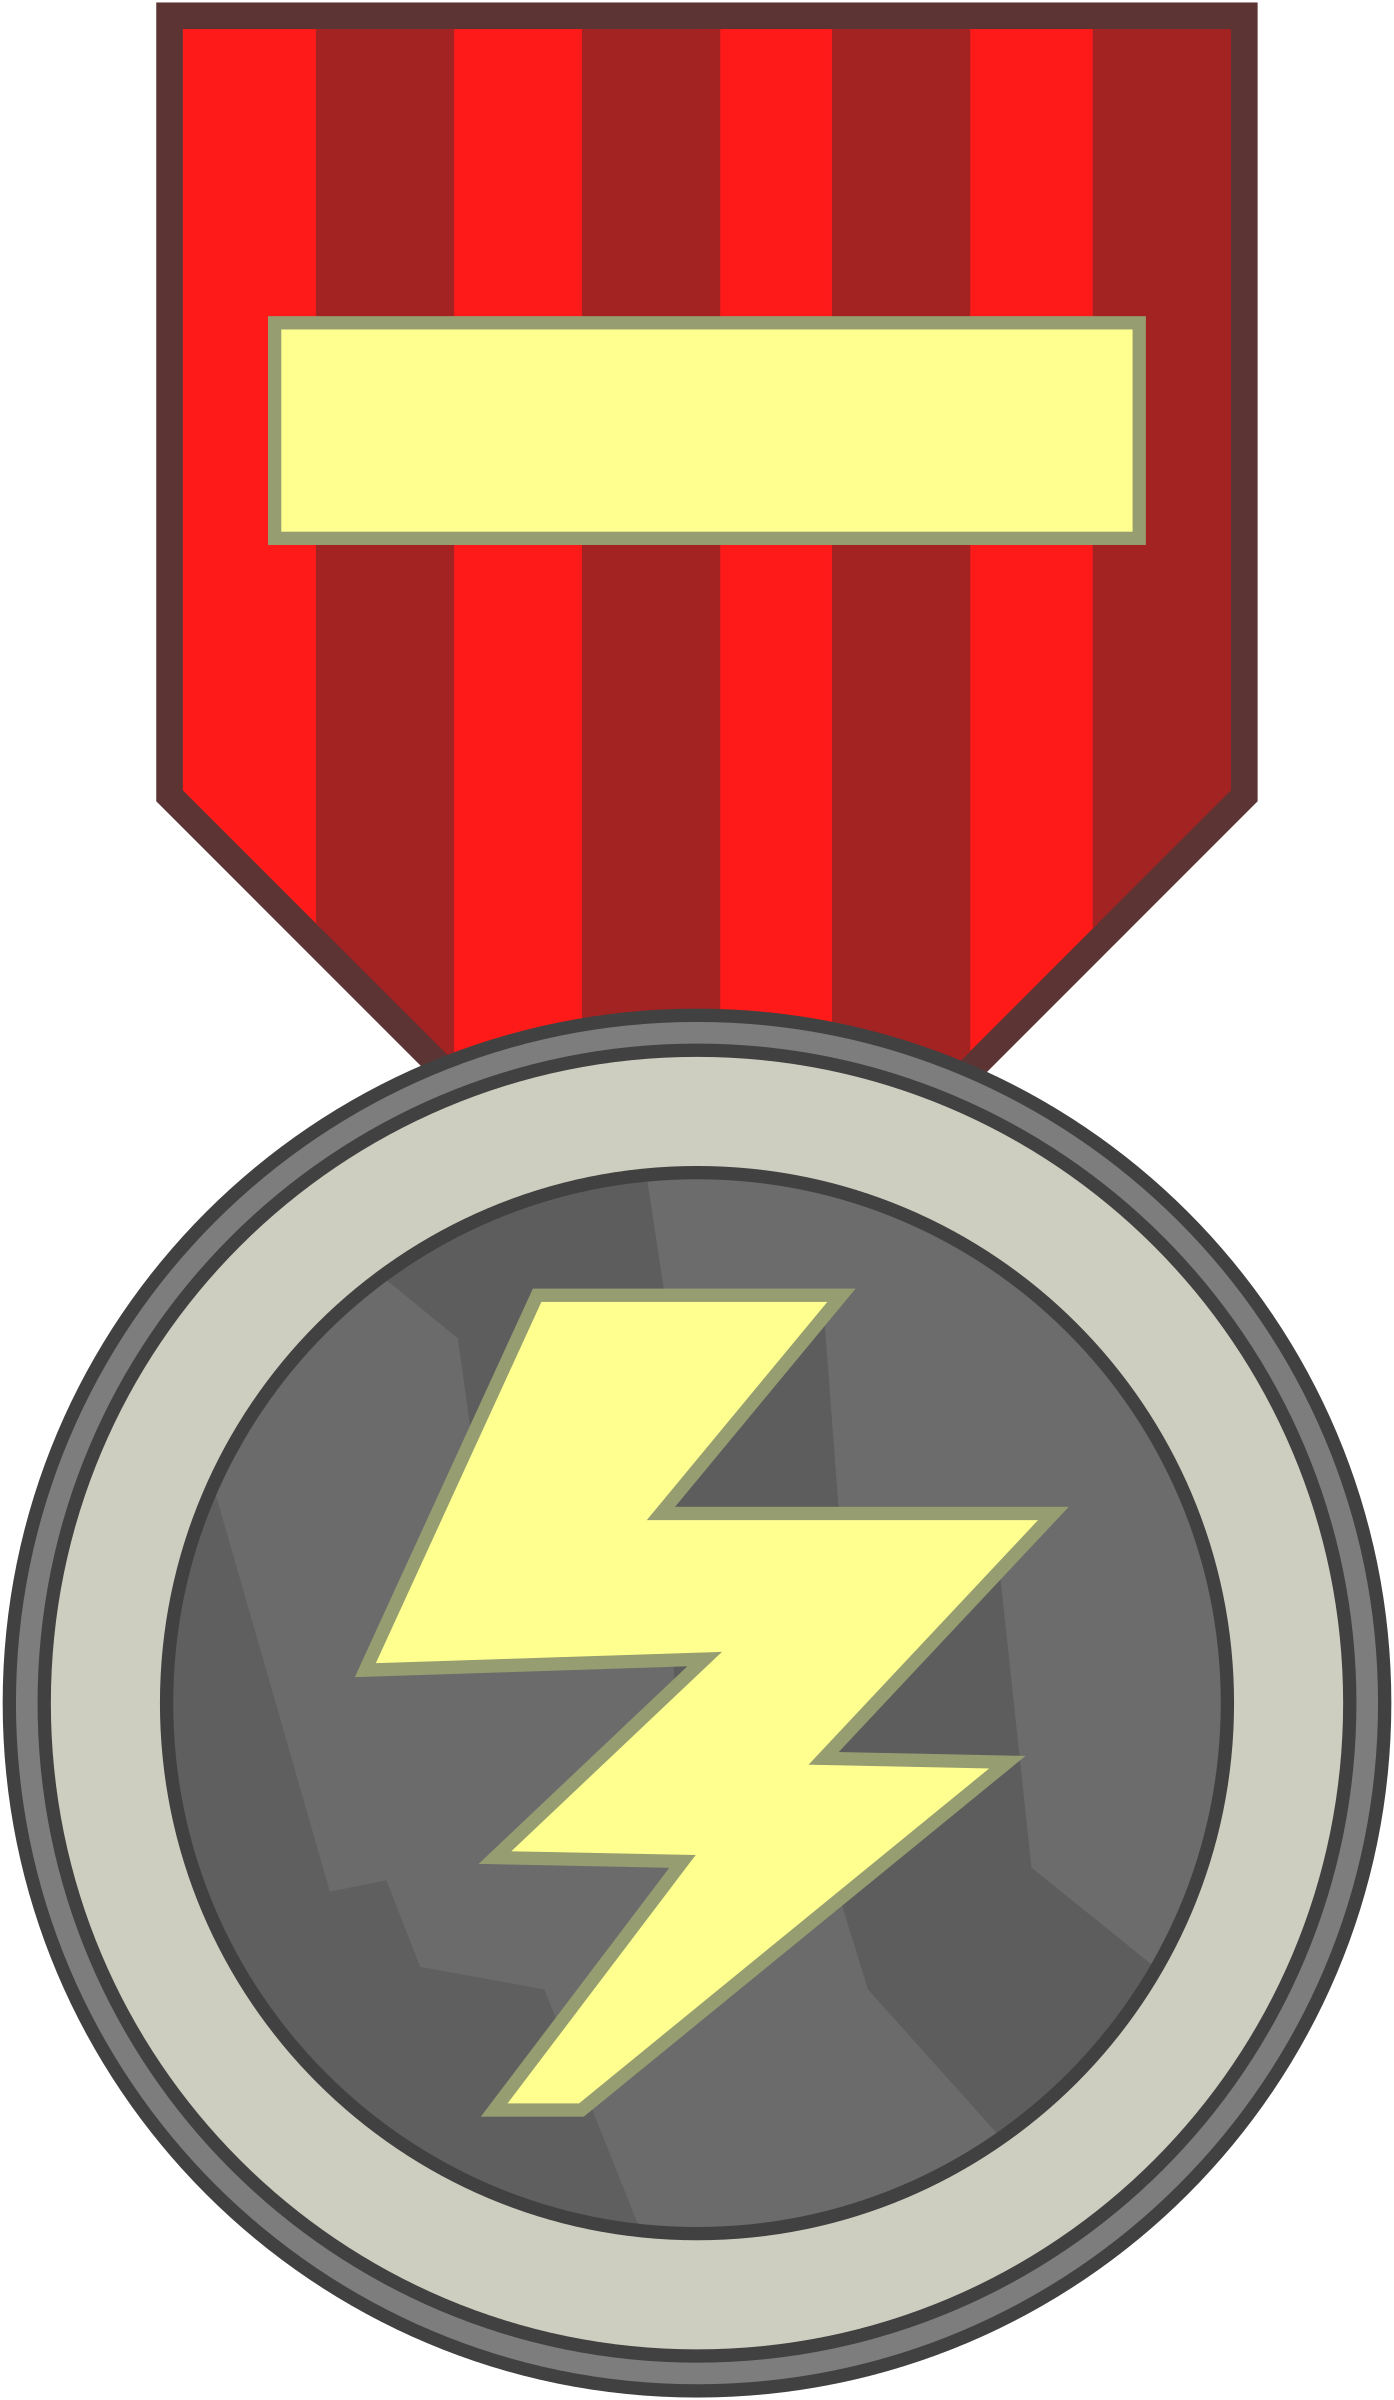 Template big image png. Medal clipart acheivement